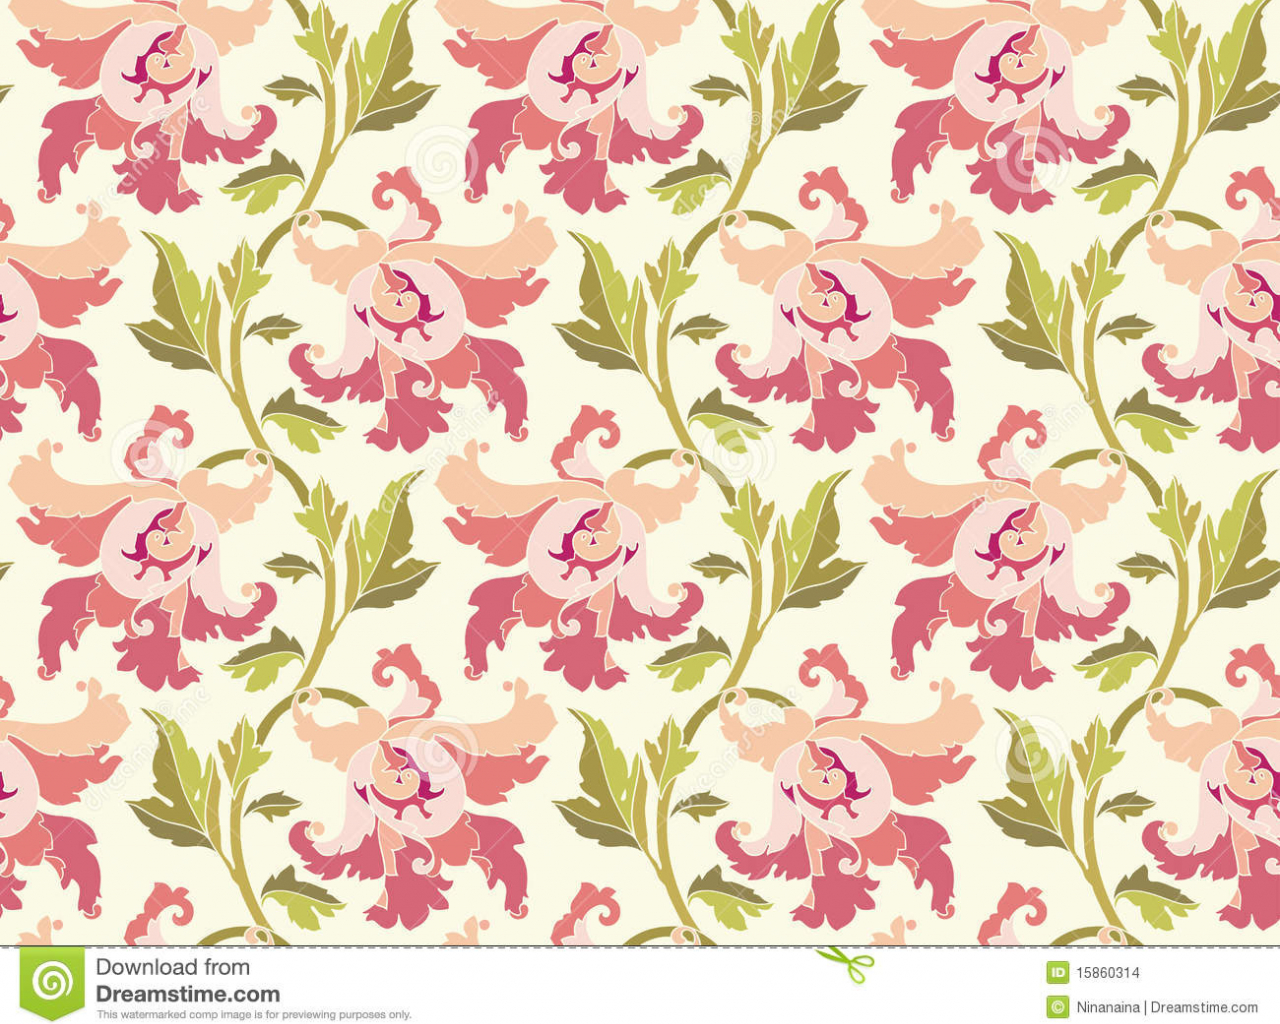 Free Download Modern Floral Wallpaper Designs Modern Flower